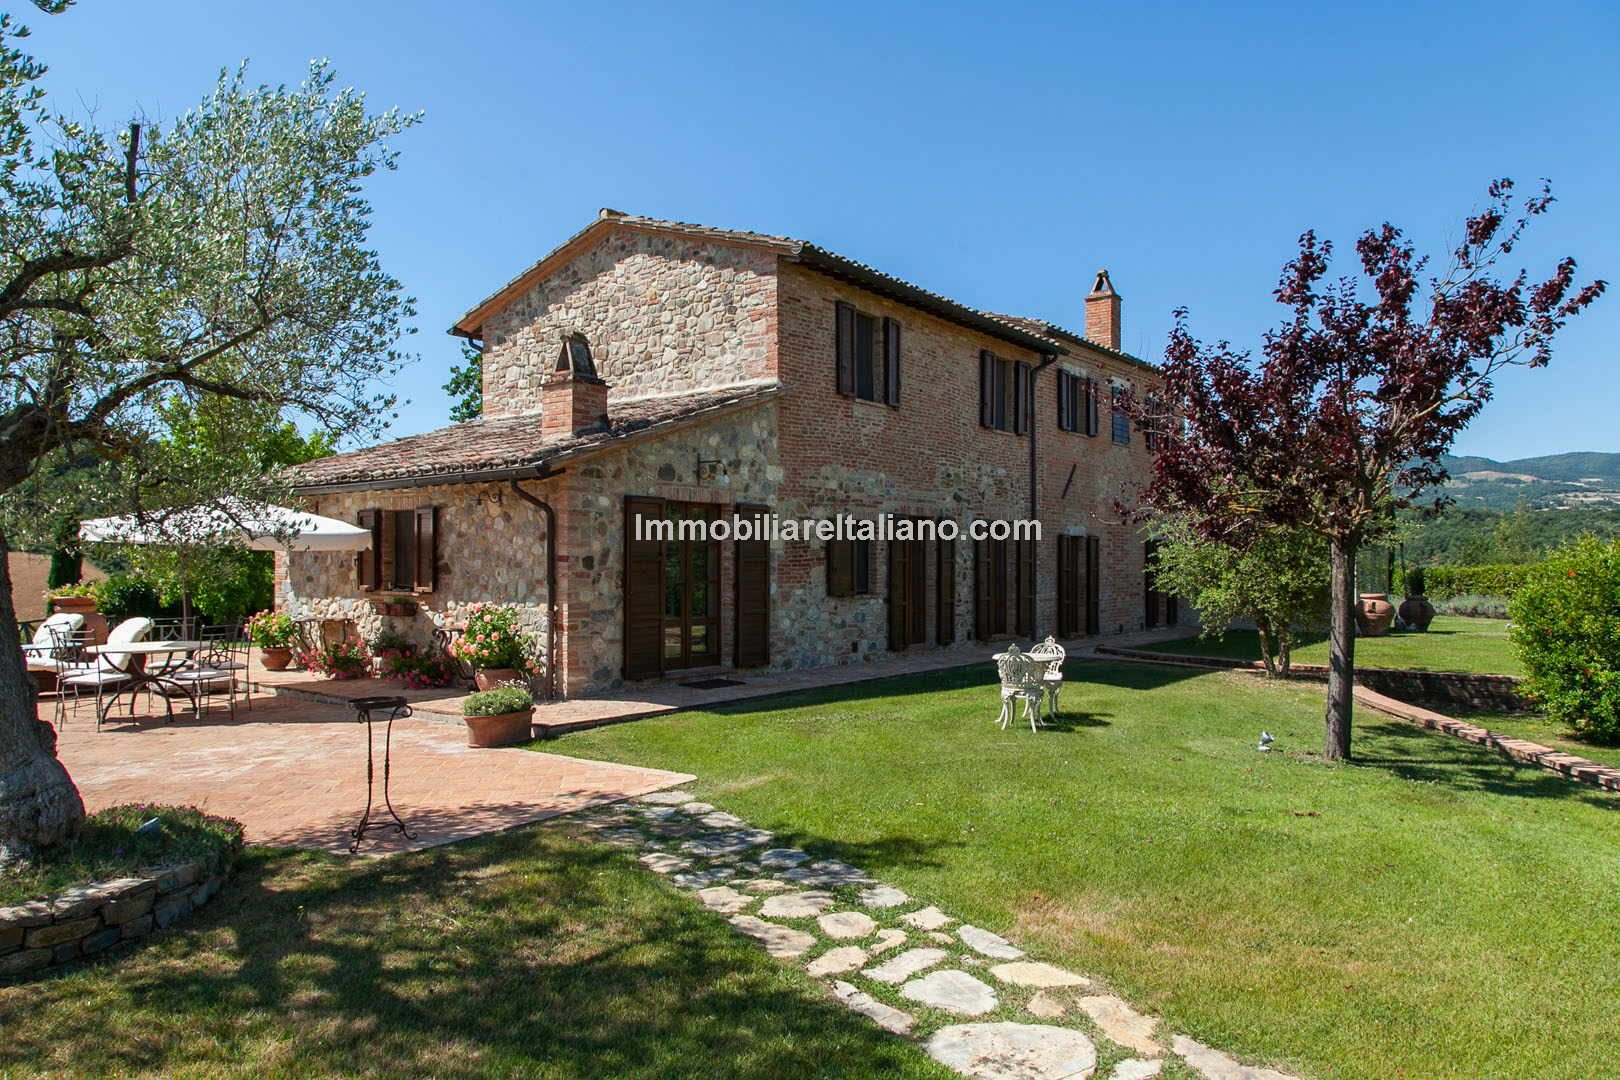 Restored 6 bed traditional Tuscan farmhouse Immobiliare Italiano for Traditional Tuscan House  585eri